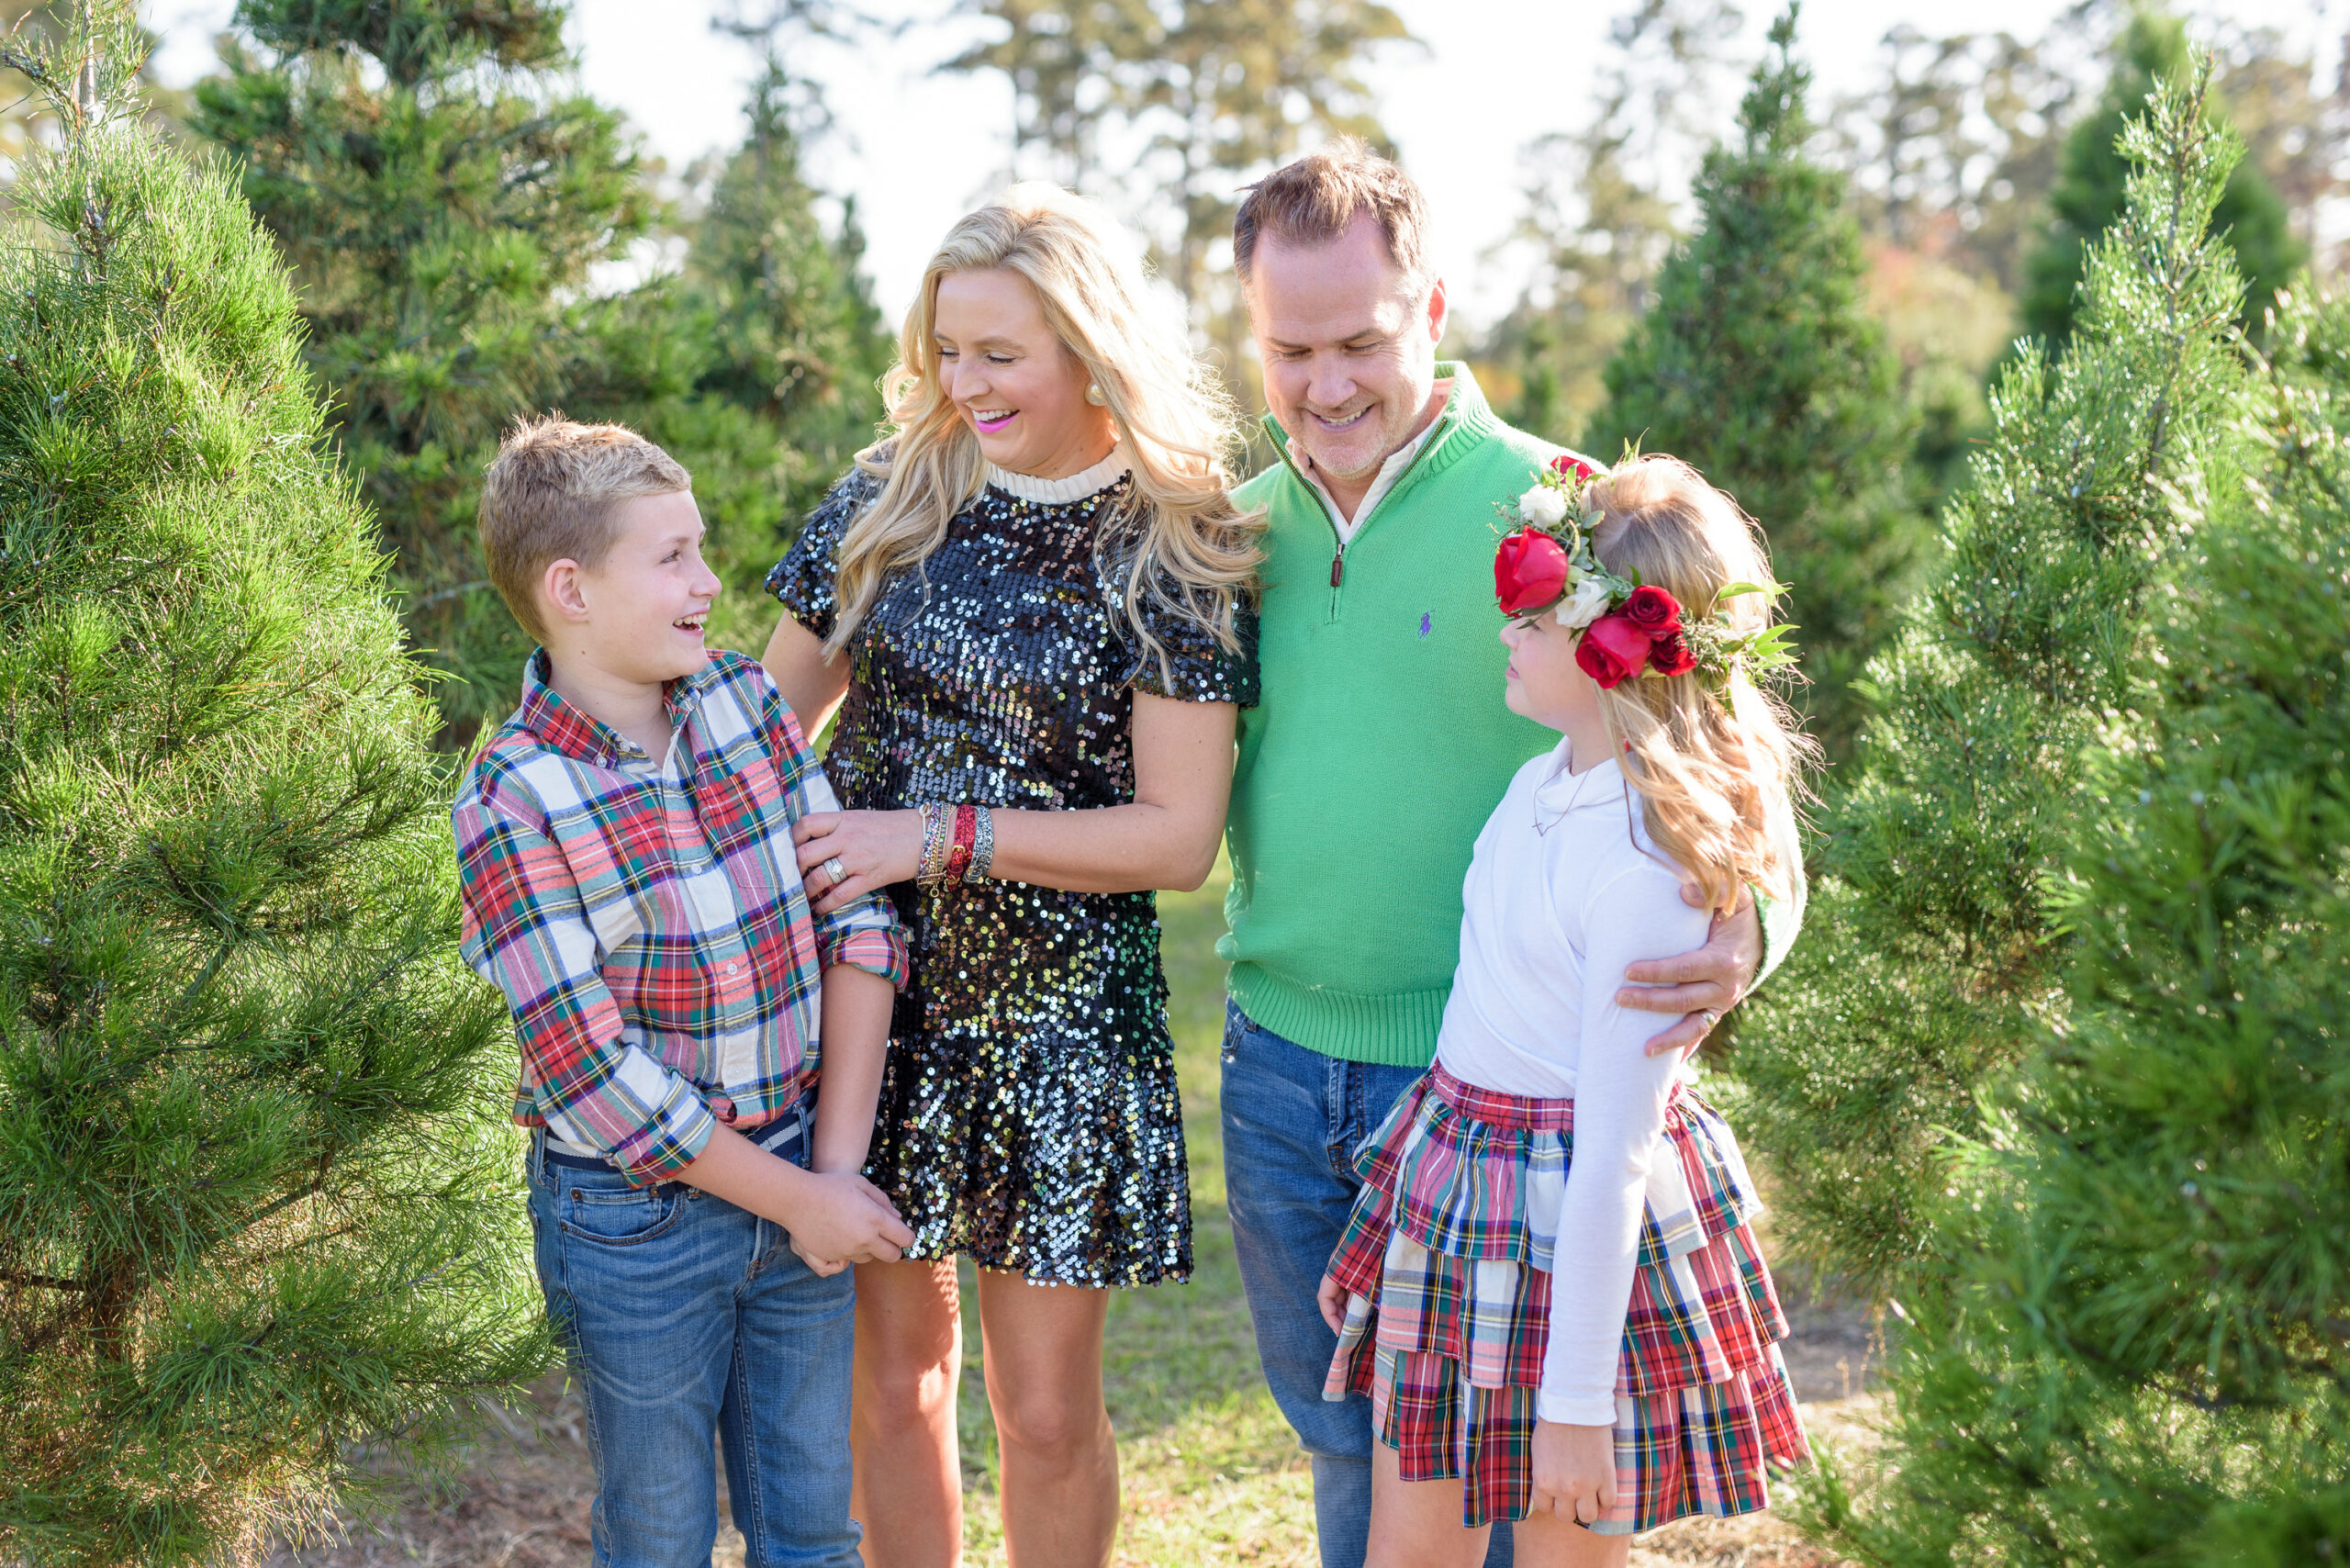 Christmas Tree Farm Photos by popular Houston lifestyle blog, Fancy Ashley: image of a family standing in a row of pine trees and wearing a black sequin dress, black suede ankle boots, plaid tier ruffle skirt, flower crown, plaid button up shirt, red loafers, and green pullover sweater.